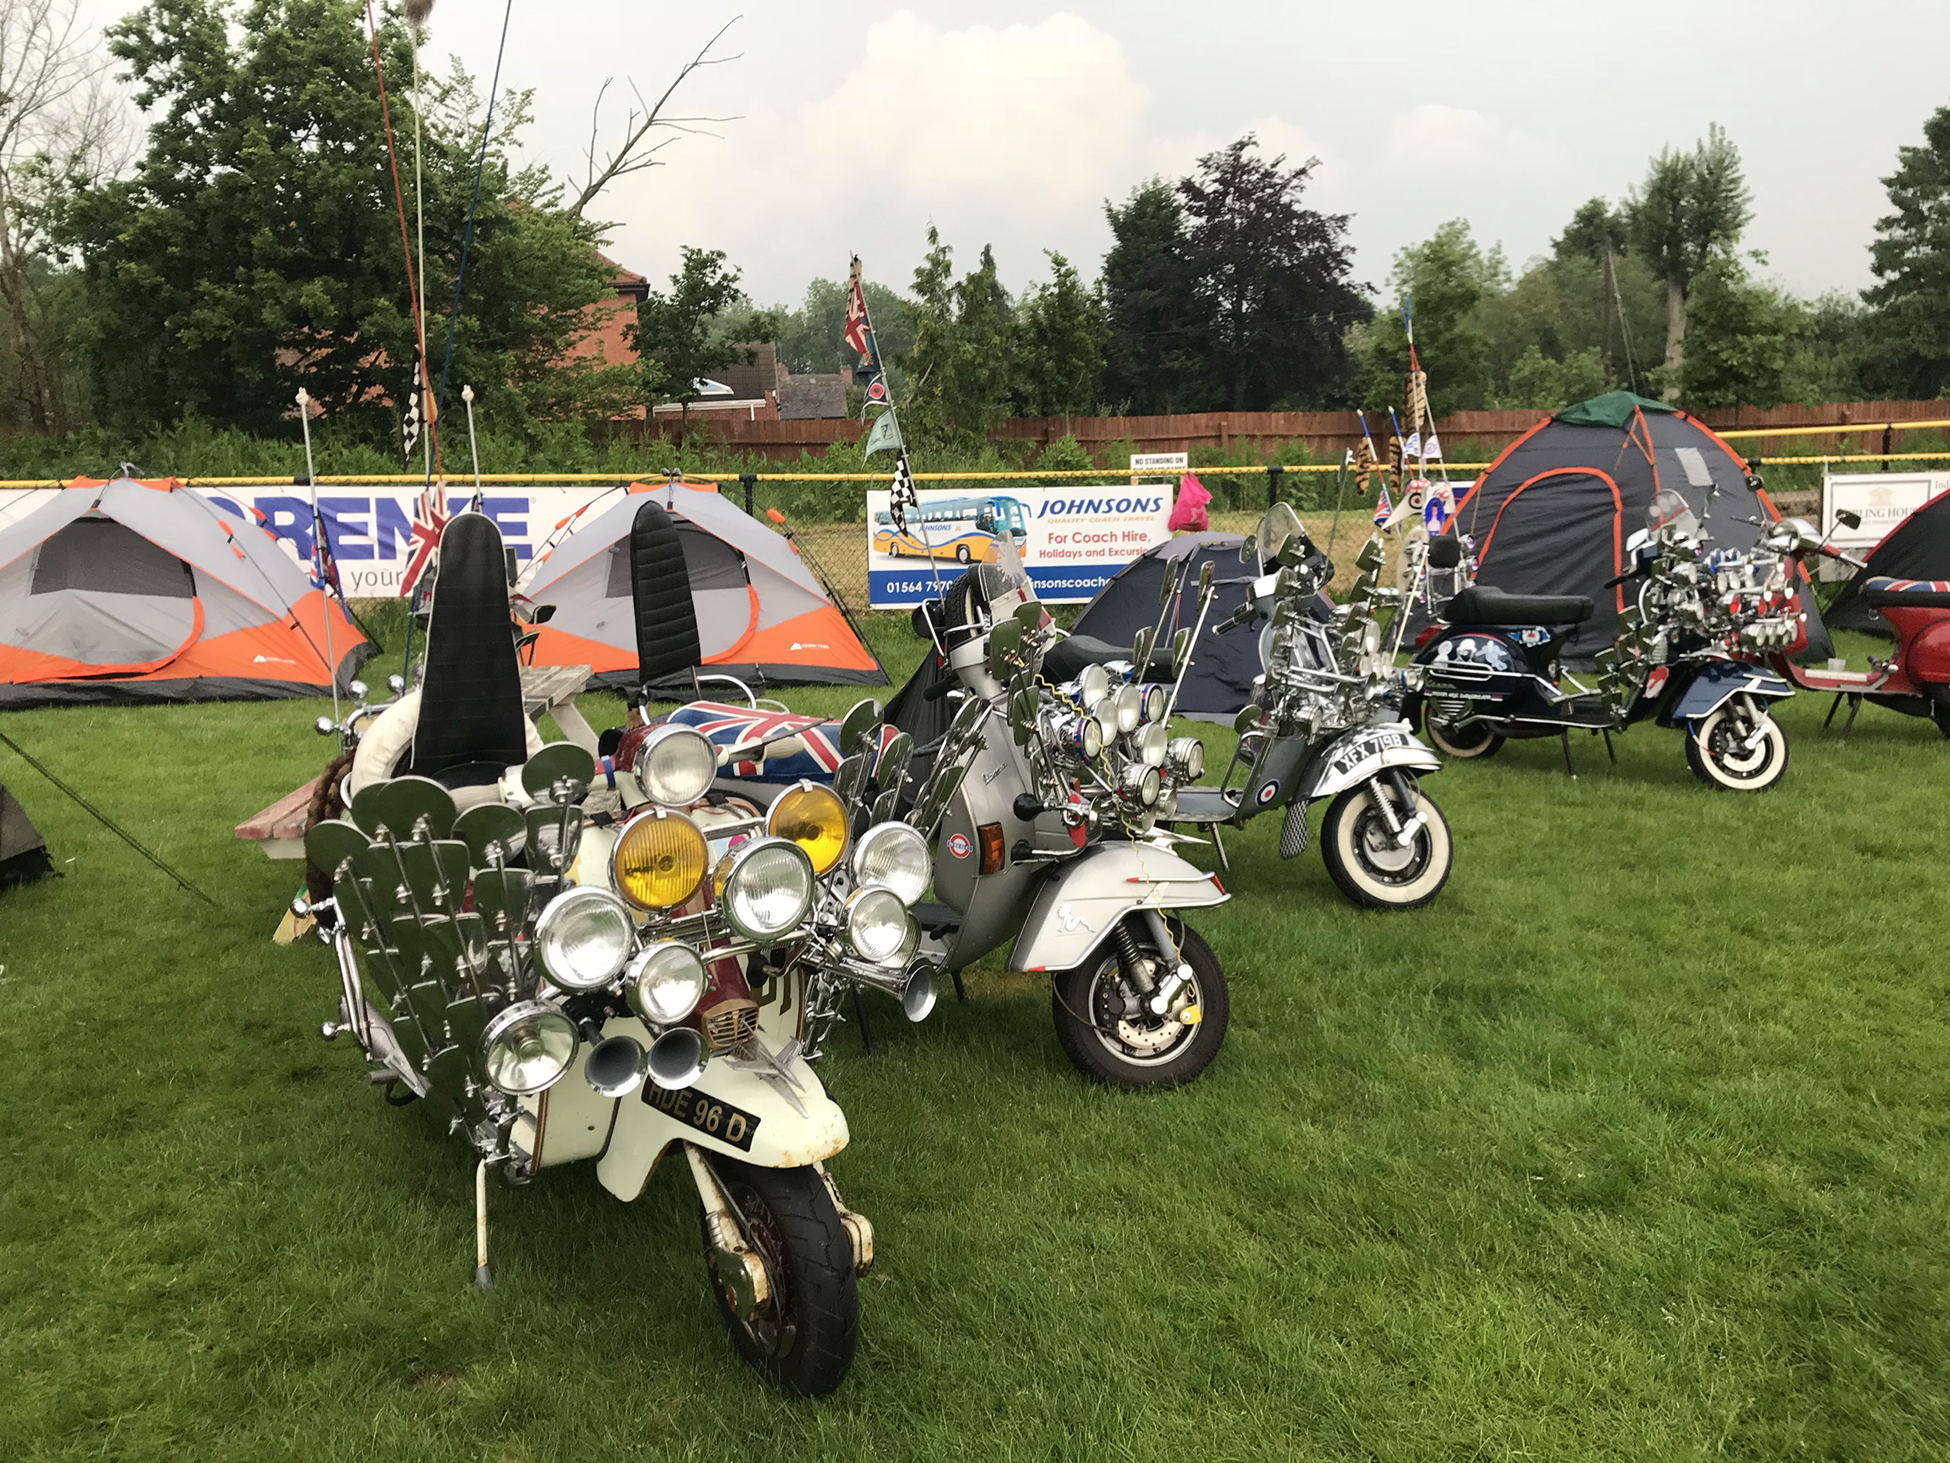 A photograph shows customized Vespa scooters parked on a grassy field with tents in the background.